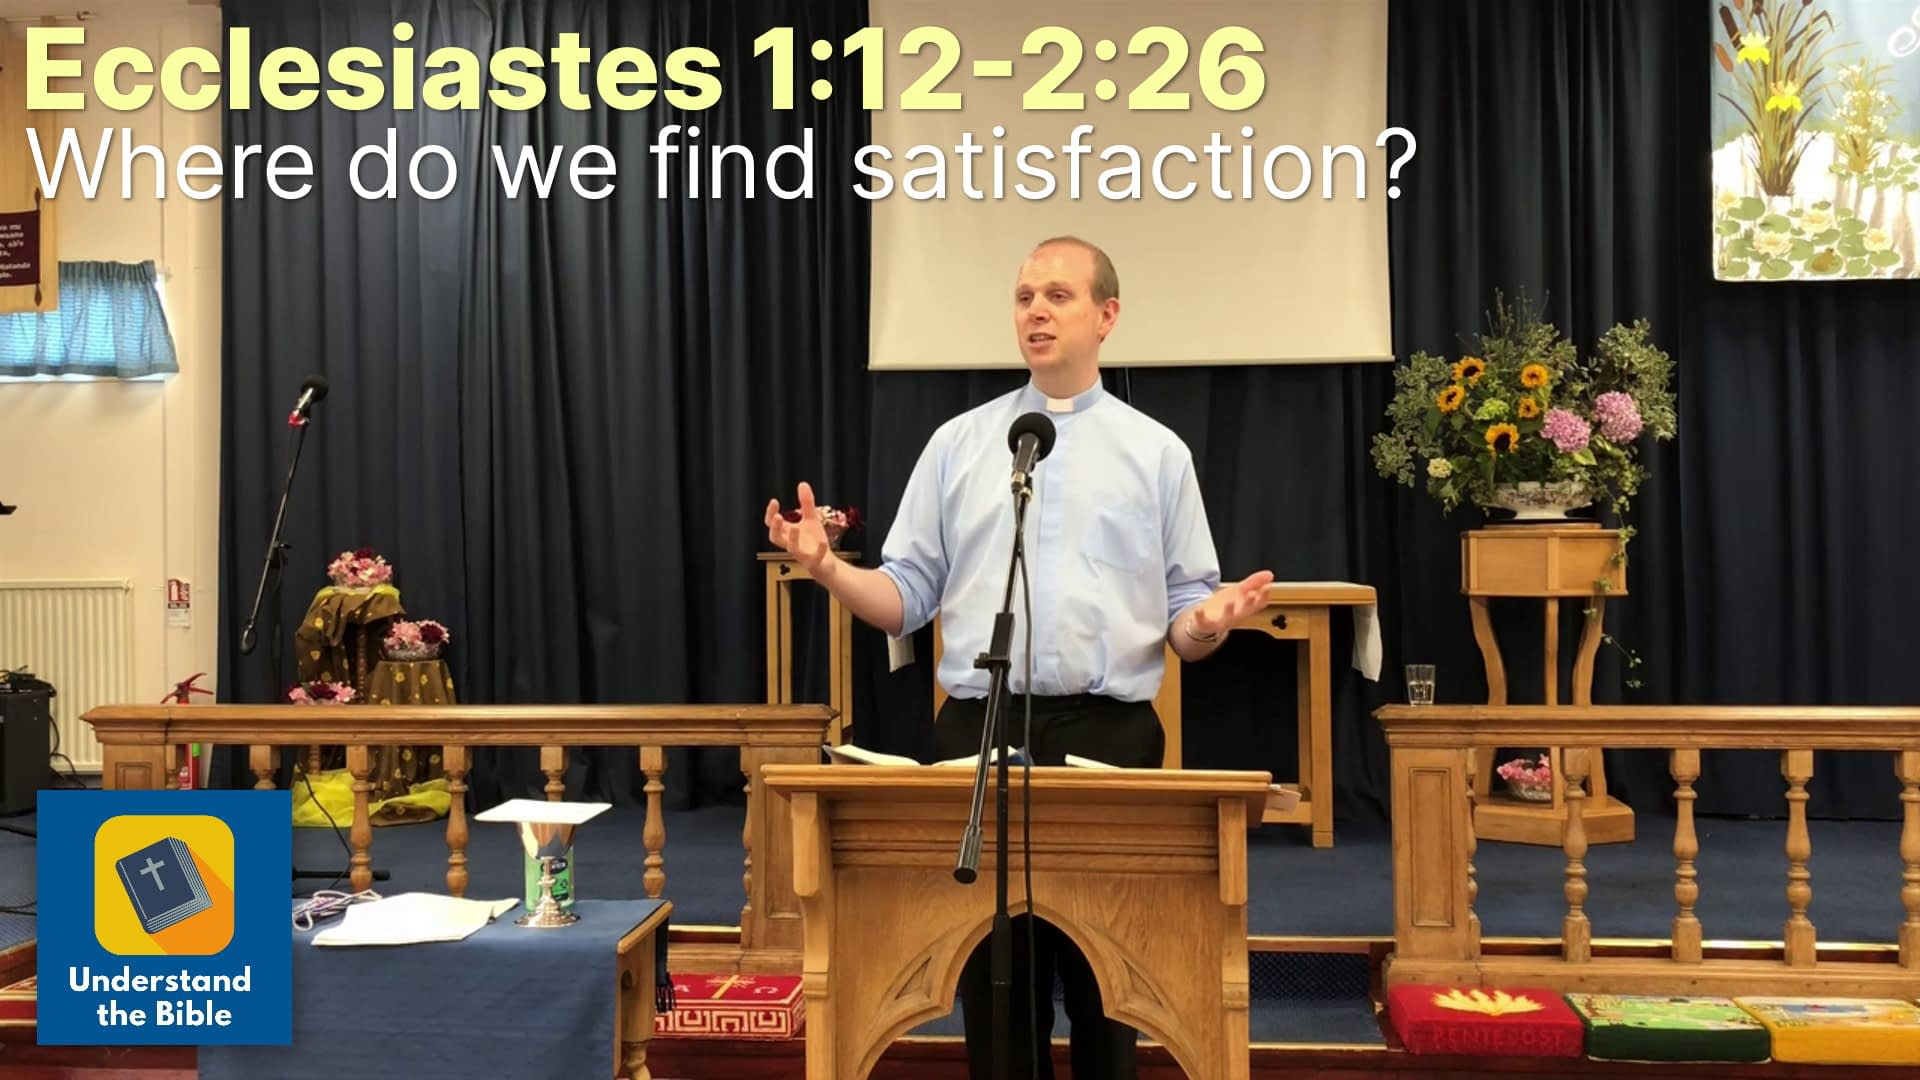 How to find satisfaction? | Eccl 1:12-2:26 | Sermon